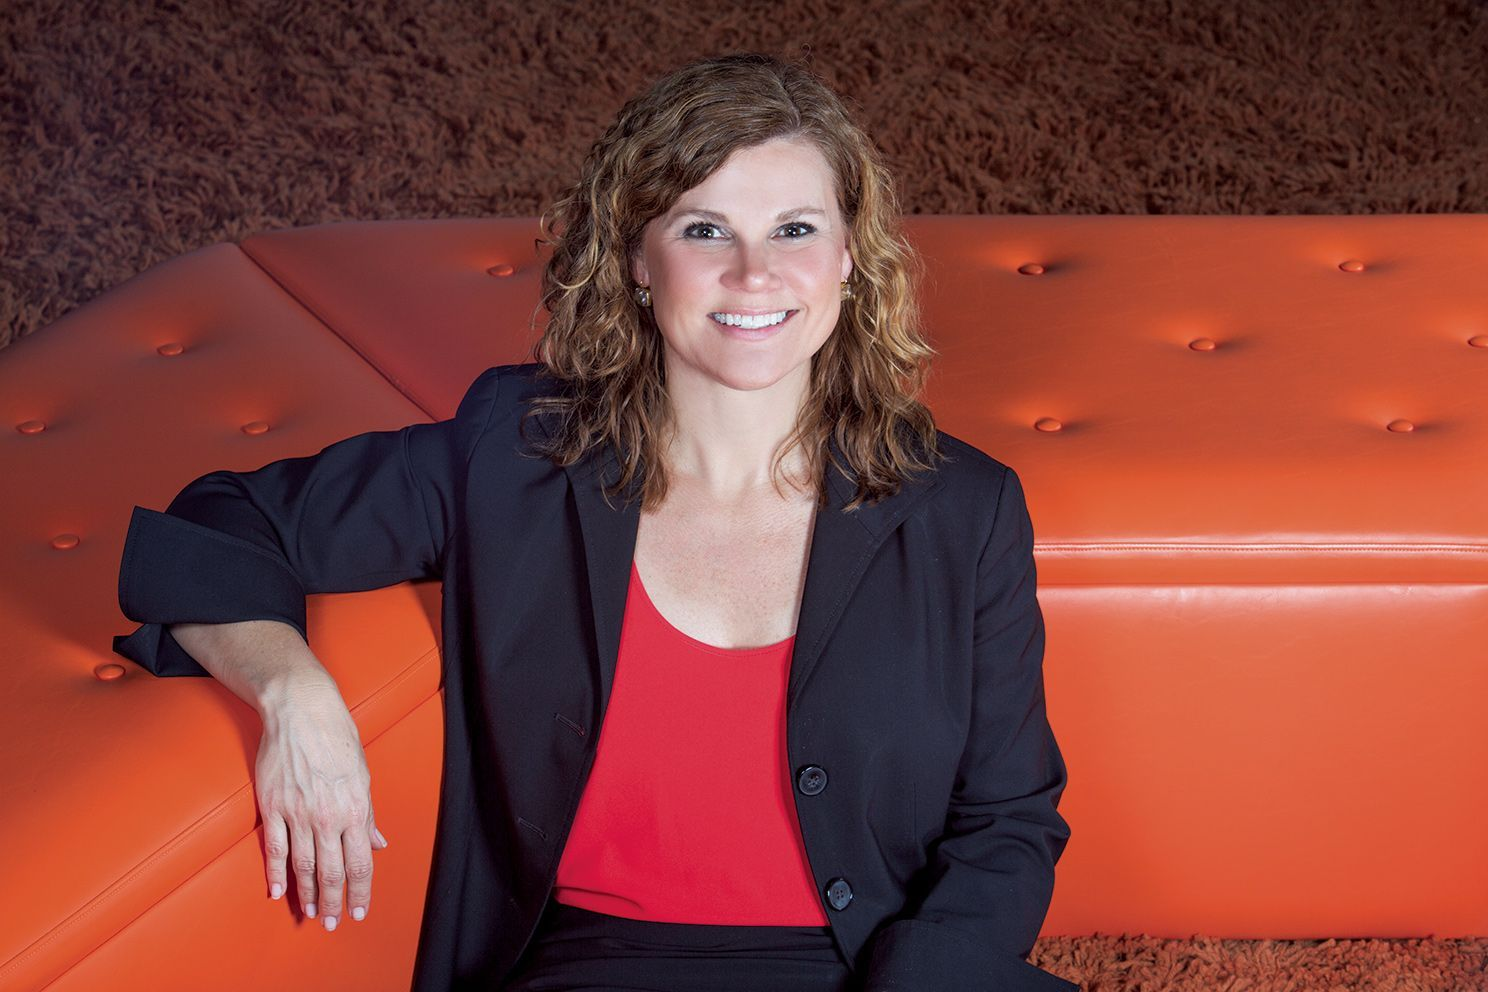 "When Ellen Gannaway Lail '84 meets with a Fortune 100 client, chances are she will be the only woman in the room. As Regional Sales Director at Pure Storage, a data storage company, Lail has managed to succeed in a competitive, male-dominated industry. <br> <br><a class=""button"" href=""https://www.hutchisonschool.org/page/alumnae-news-detail?pk=1014414"">Read Her Story</a>"